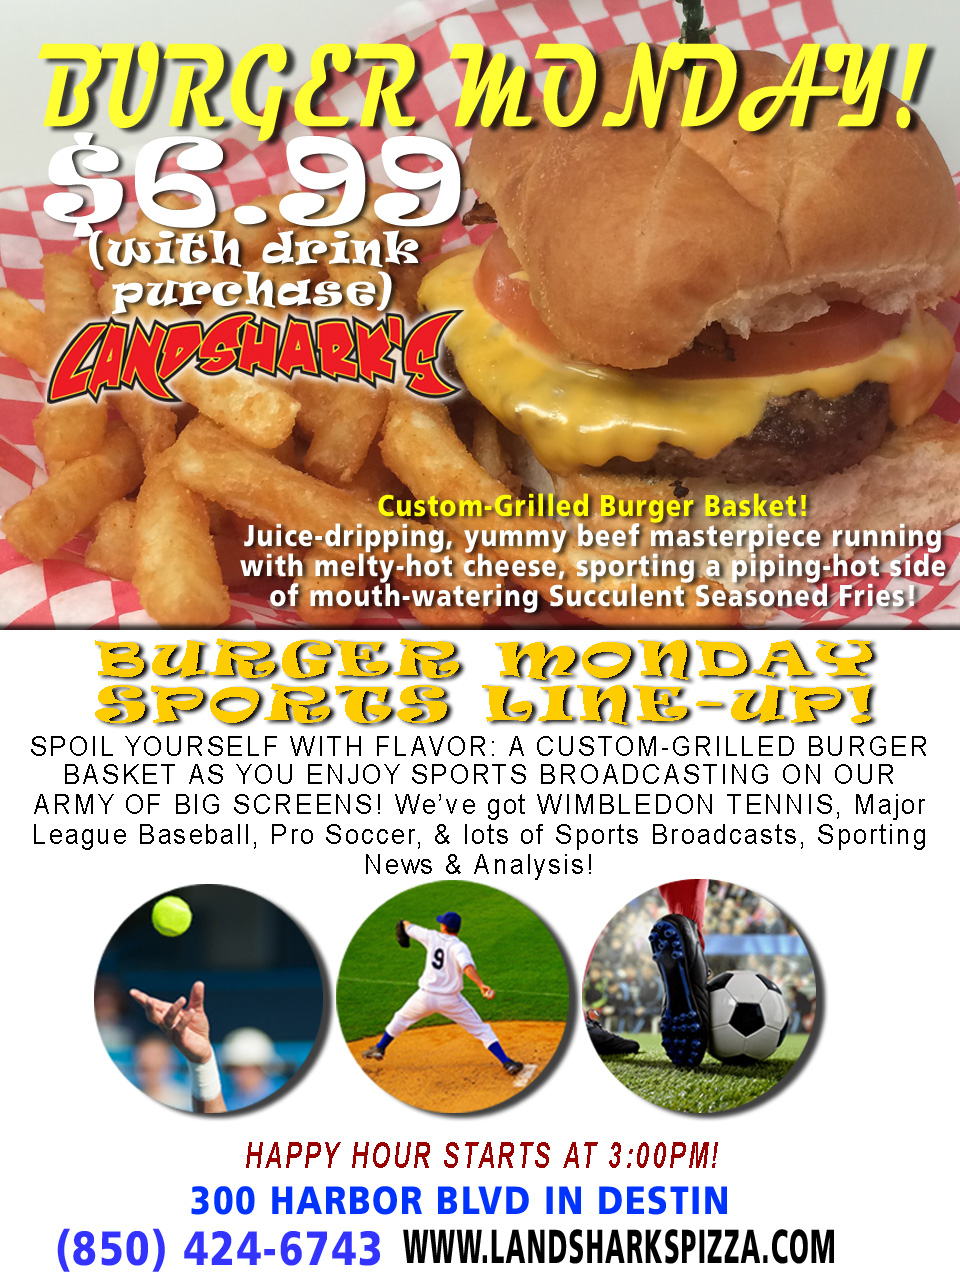 Burger Monday at Landshark's Pizza and Wings in Destin Florida